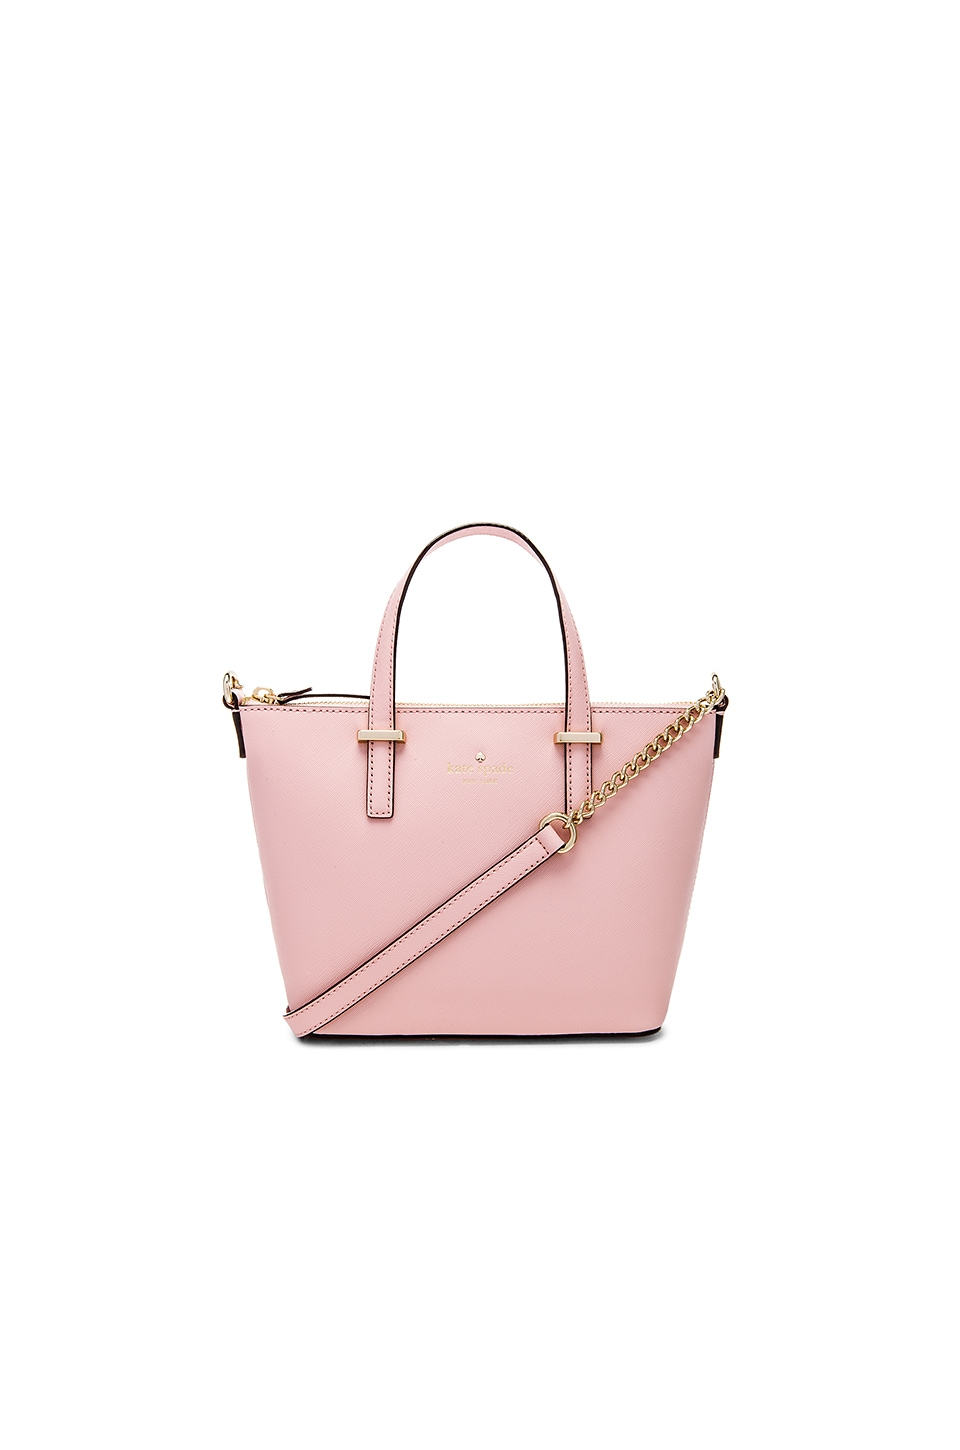 kate spade new york Harmony Crossbody in Rose Jade